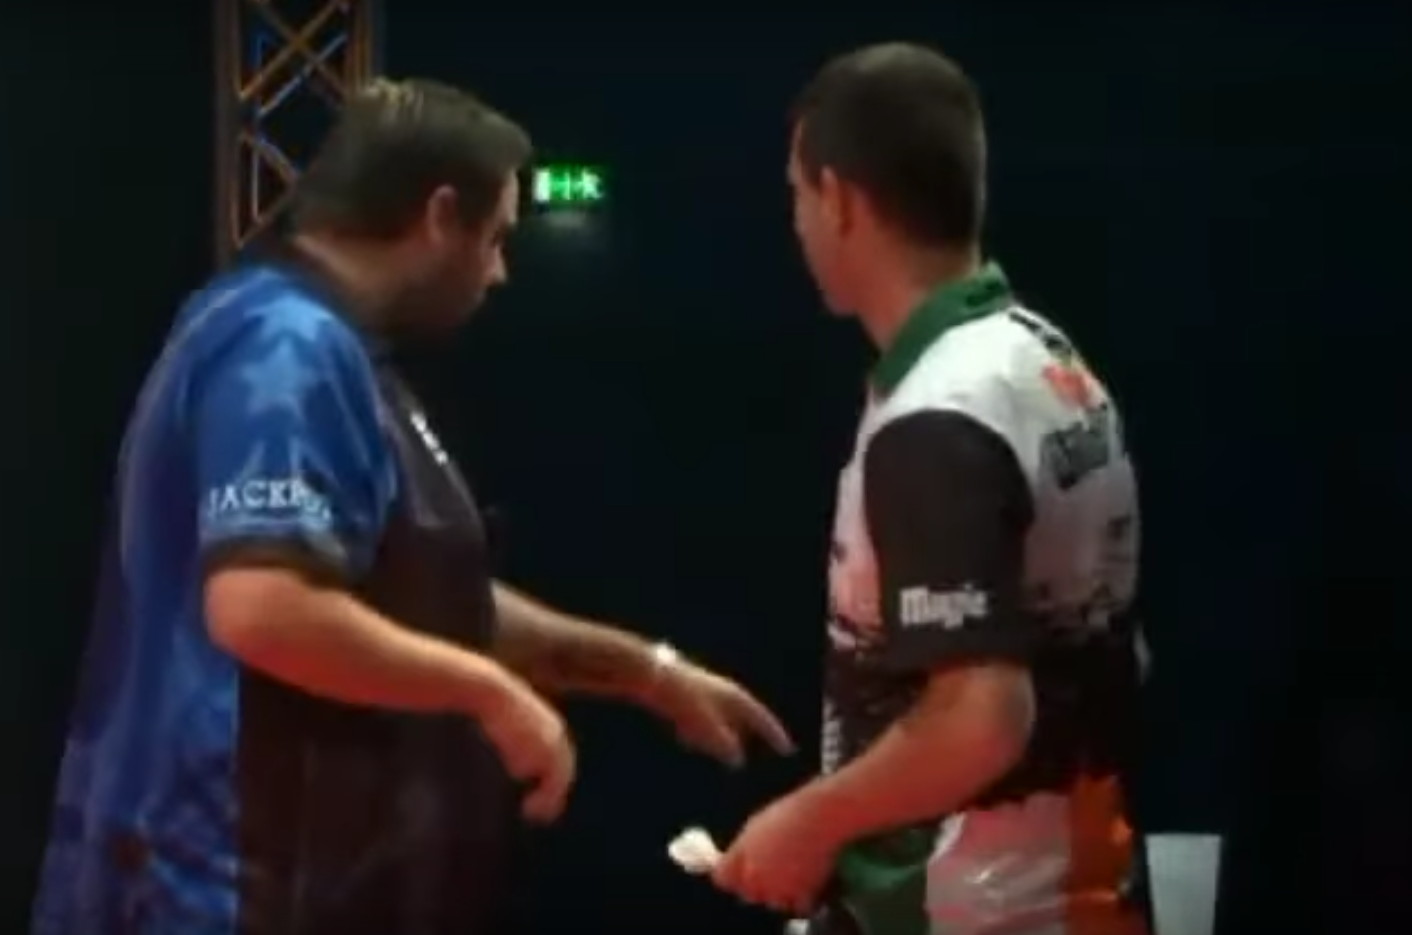 Adrian Lewis and William O'Connor Water Incident On Stage